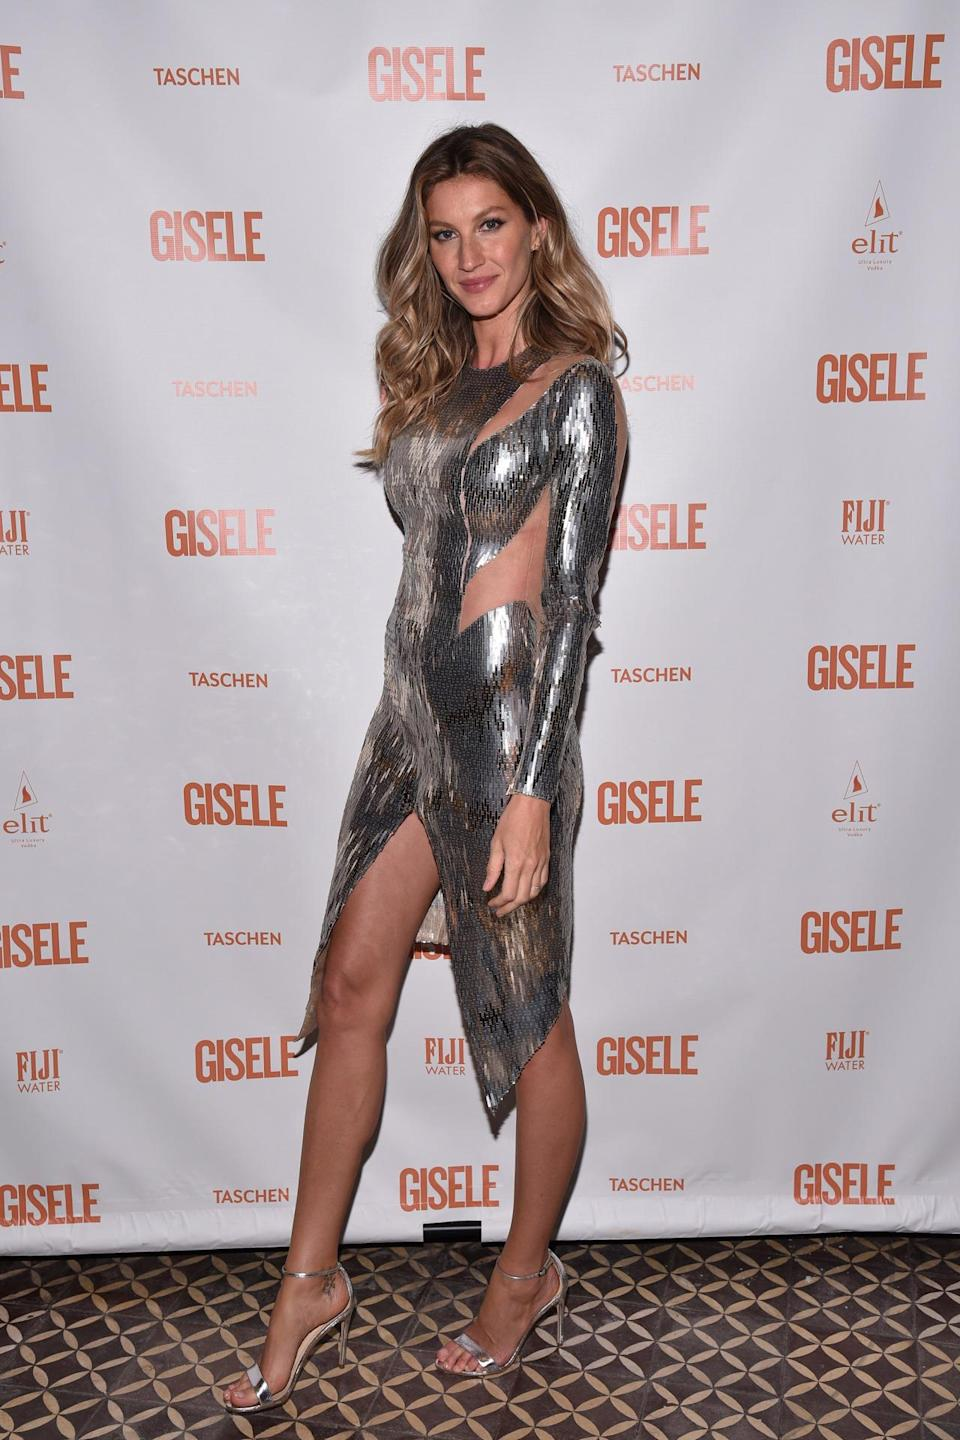 <p>The 36-year-old has made more money than any other model since 2002 thanks to lucrative deals with the likes of Chanel. <i>[Photo: Getty]</i><br></p>